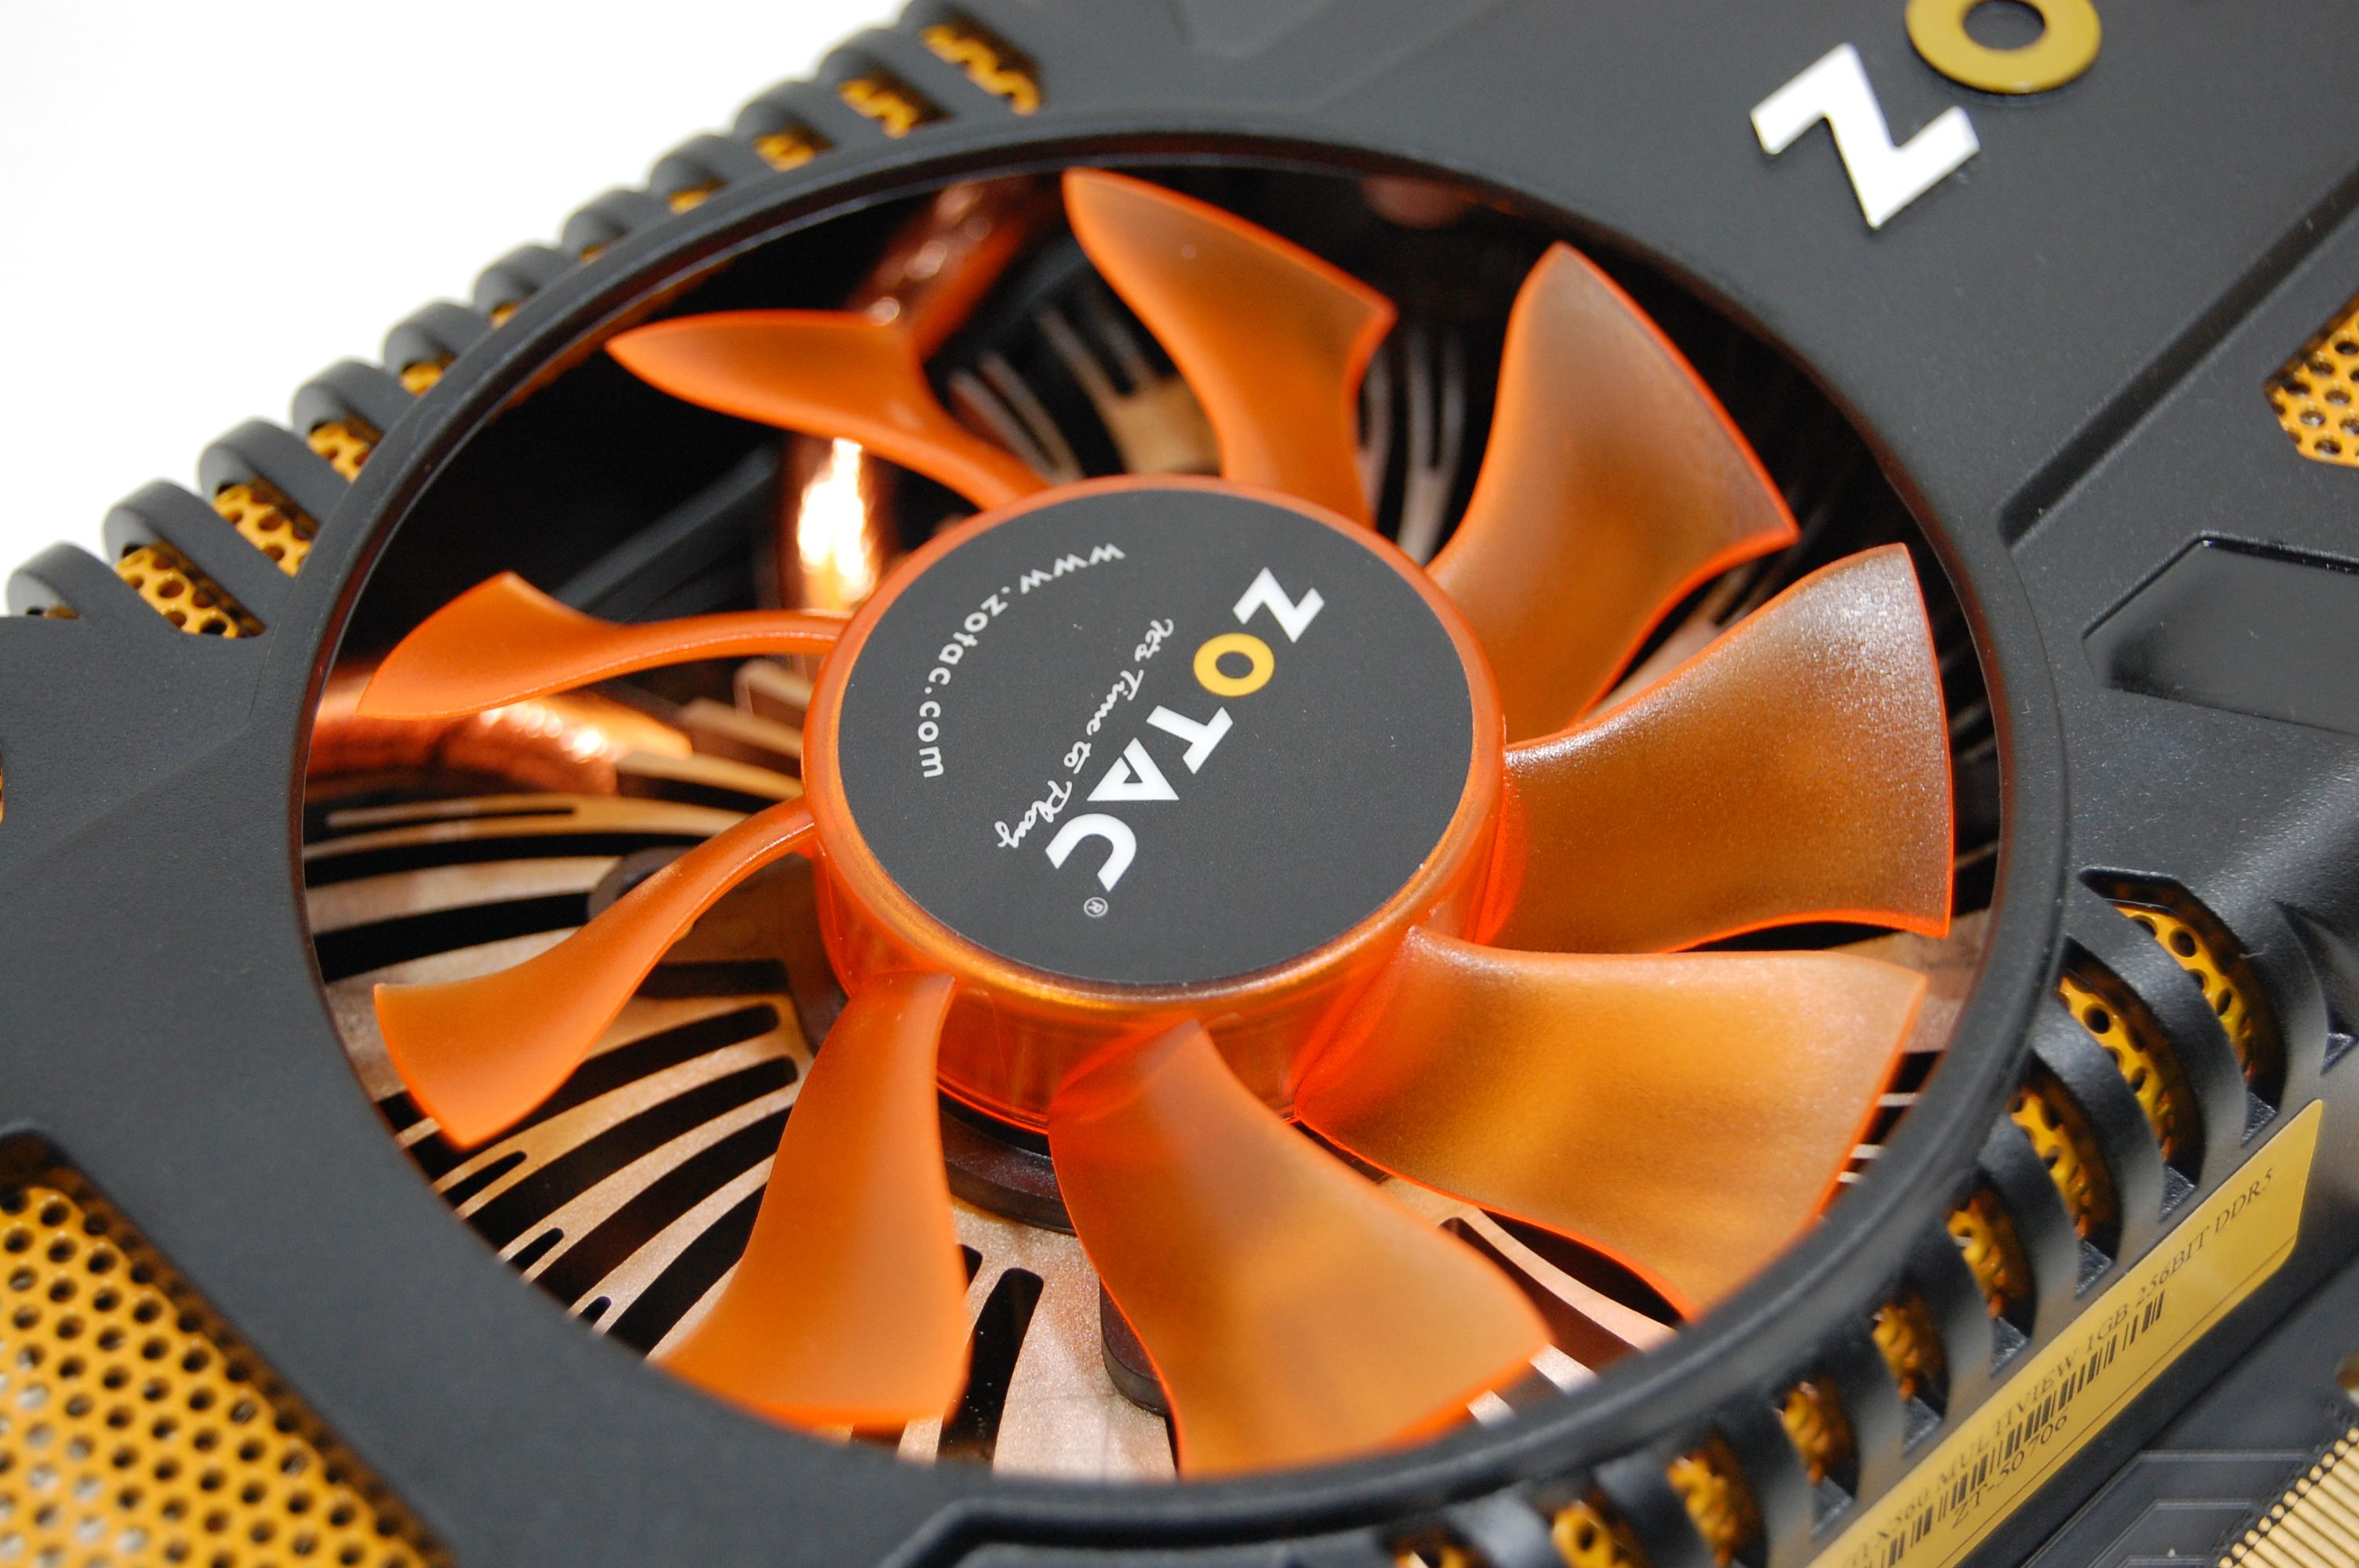 Zotac GTX 560 Multiview Fan